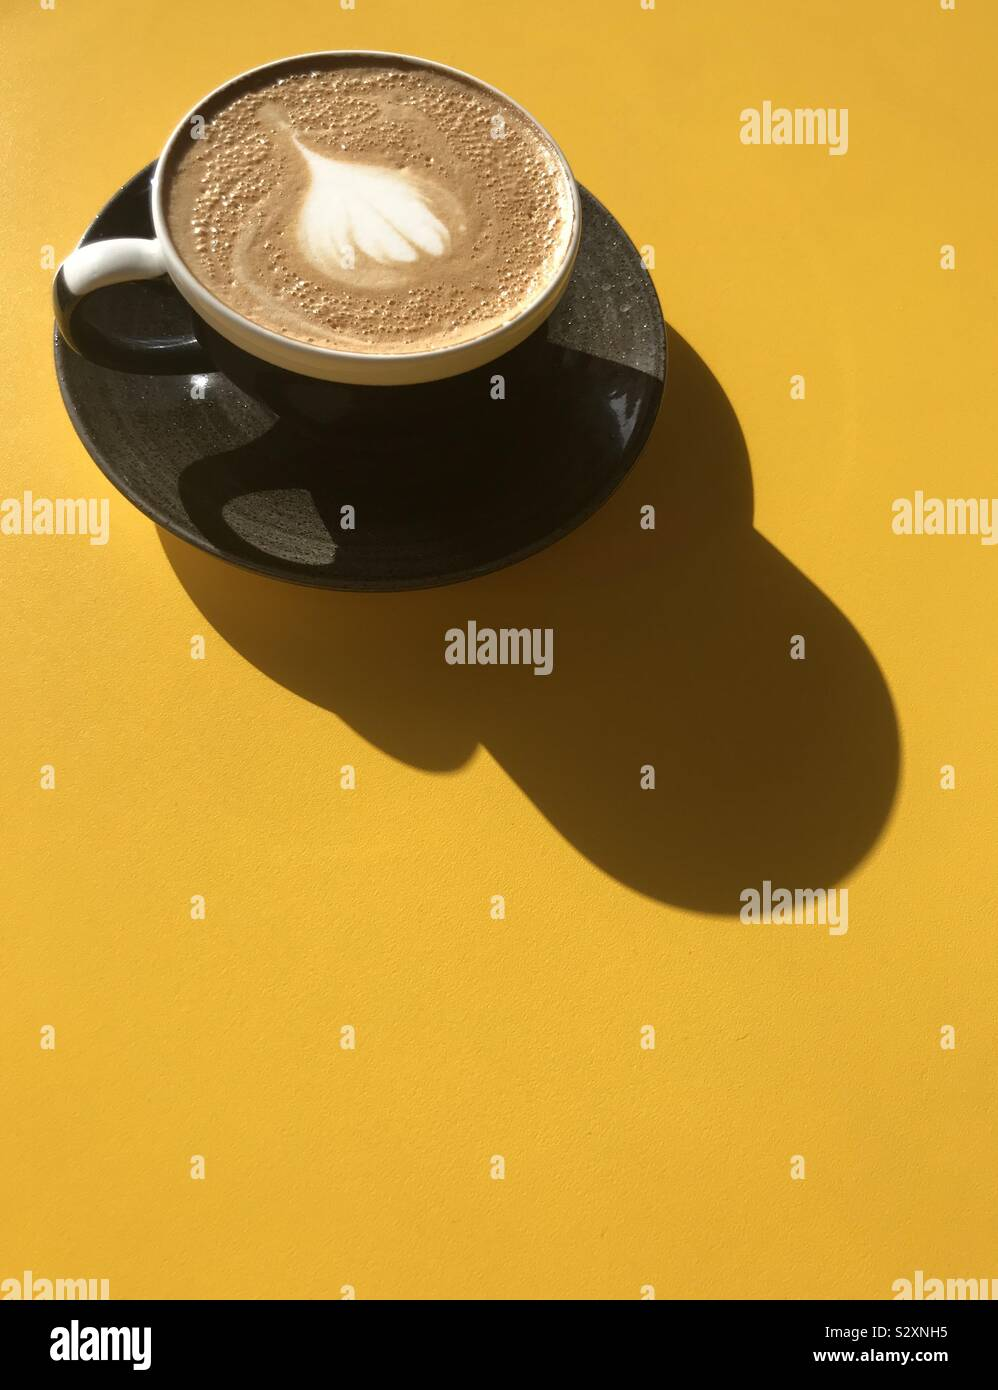 Coffee in the sunshine casting graphic shadows Stock Photo